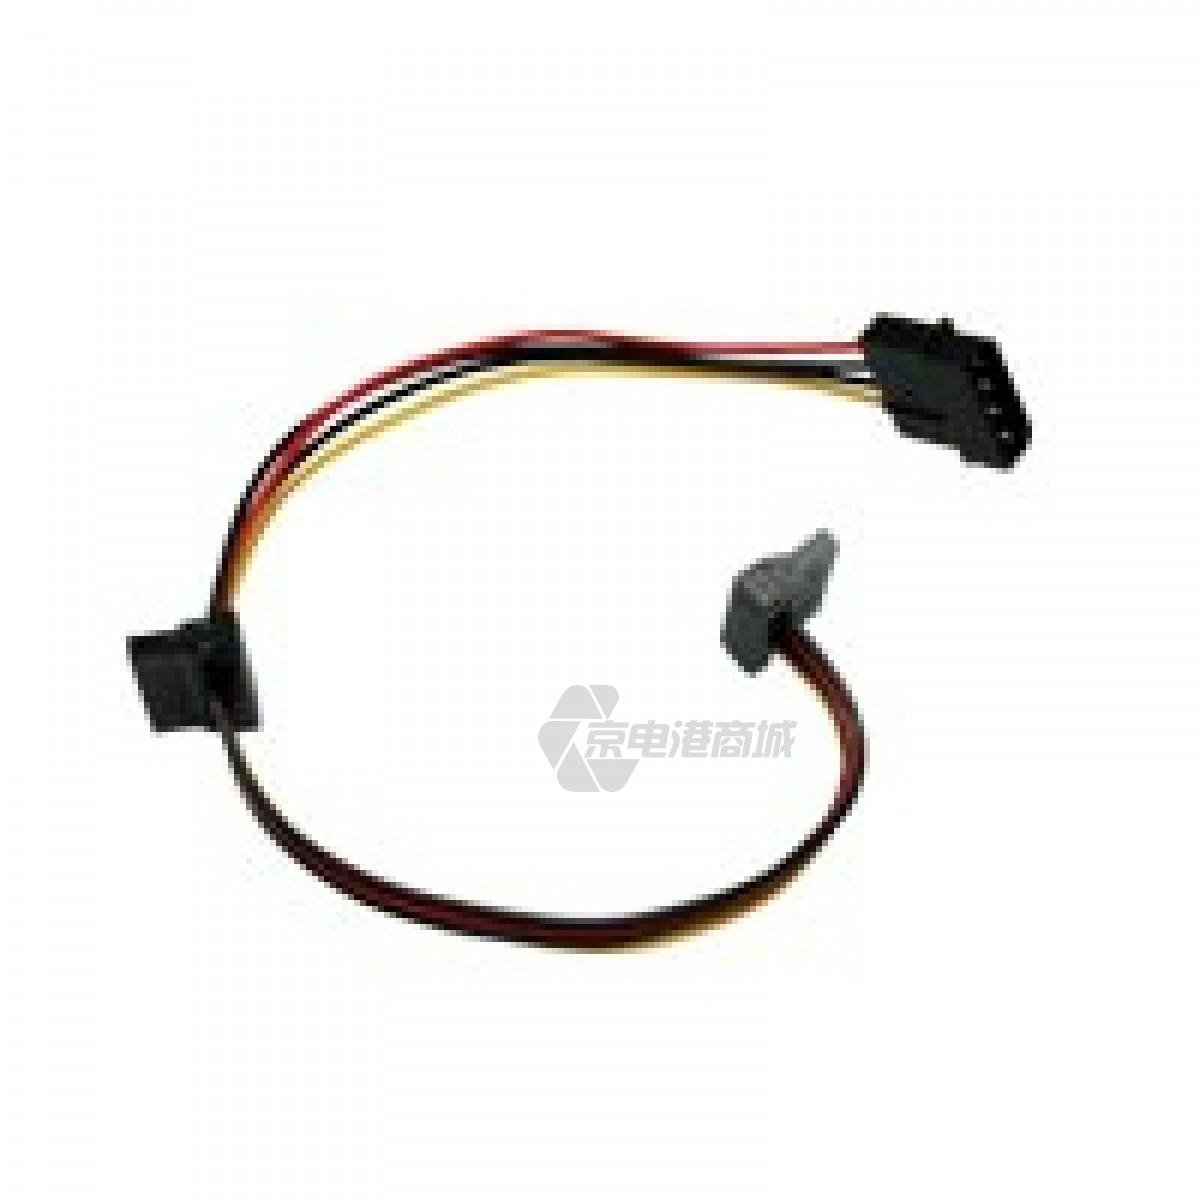 CABLES EC ST004 Converts 4pin PSU Molex to 2x SATA power